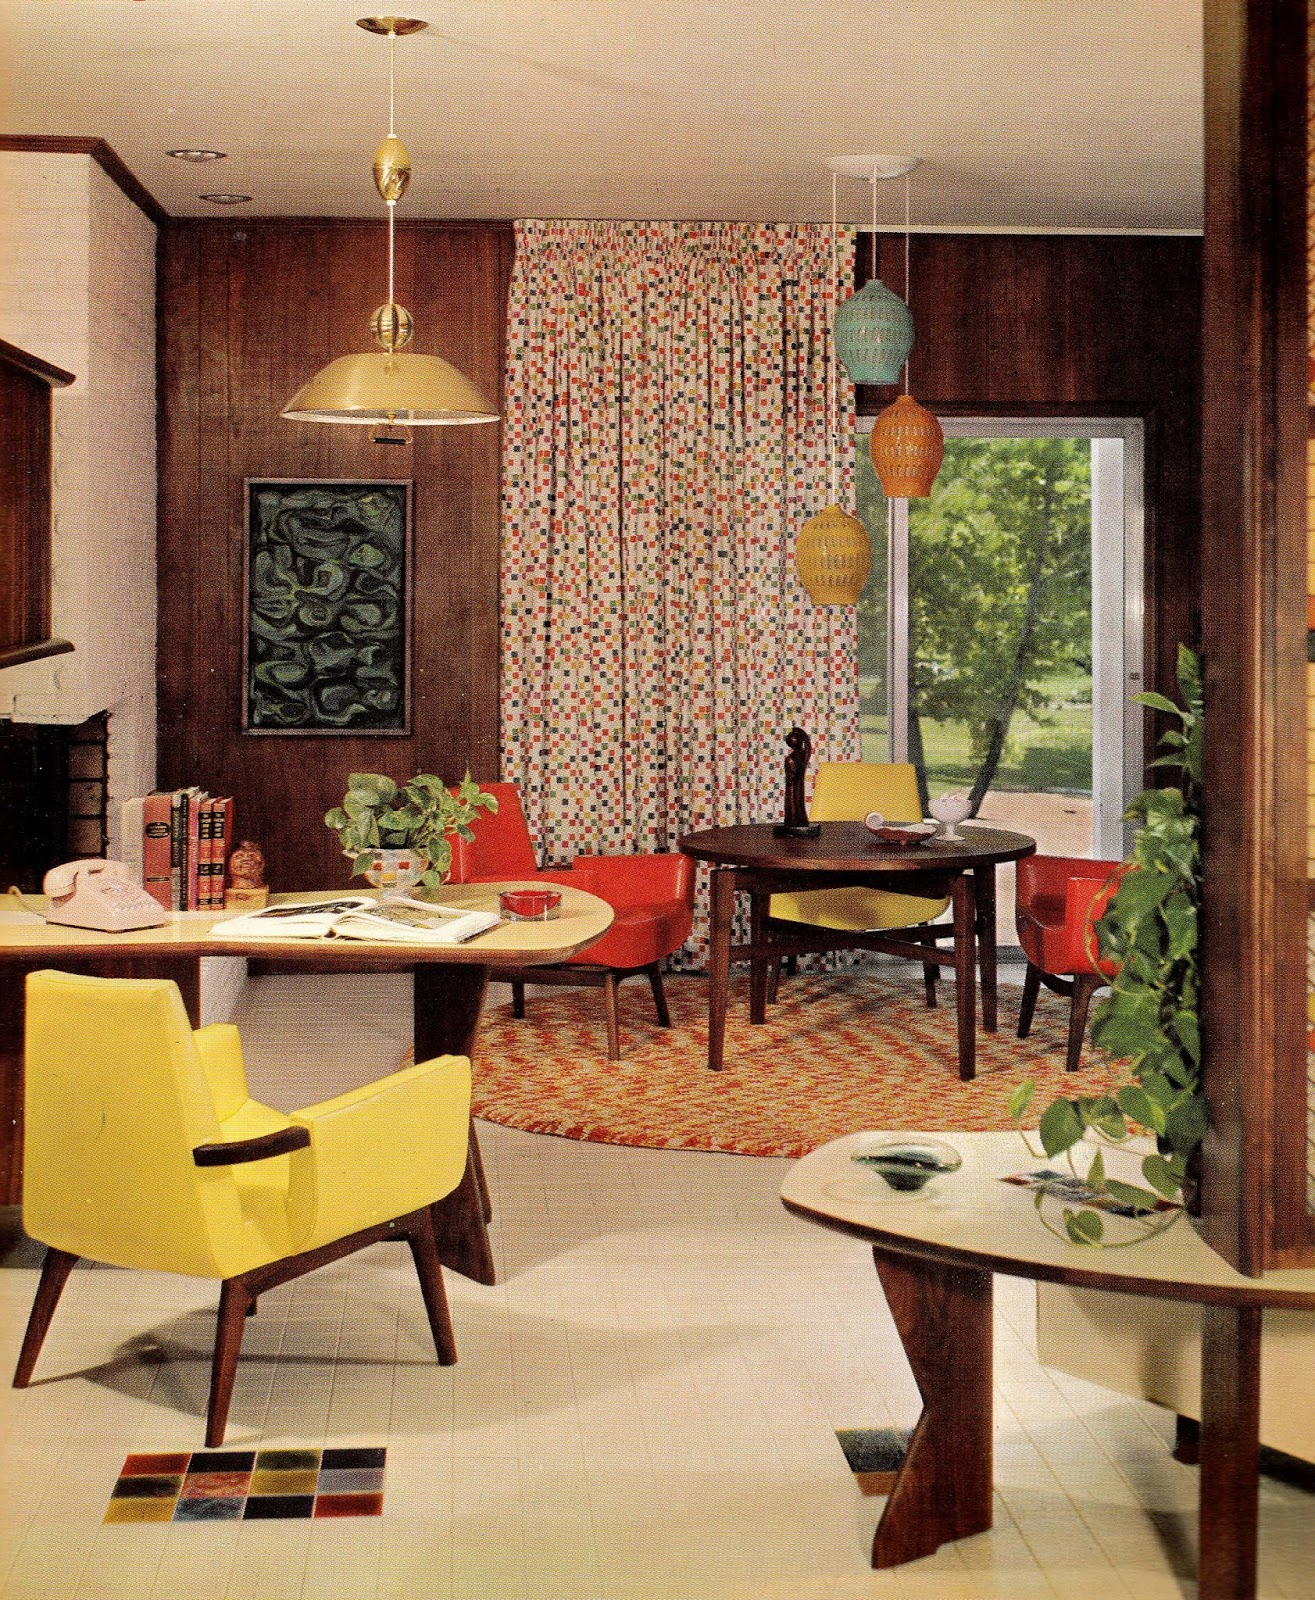 Home Interior Design Ideas Hyderabad: 1960s Interior D Cor: The Decade Of Psychedelia Gave Rise